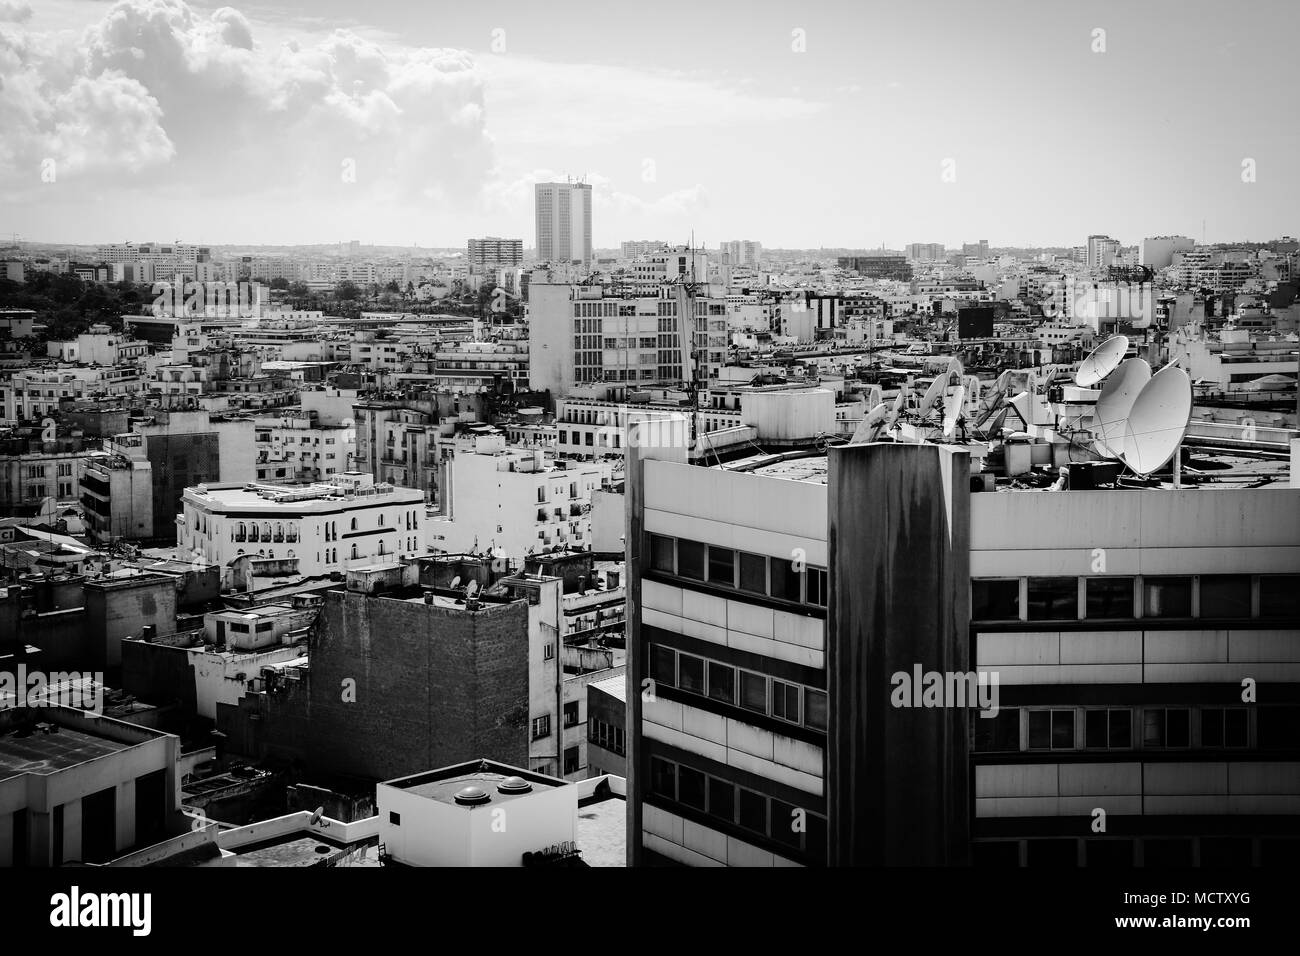 Old fashioned black and white picture of satellite dishes on a roof of a tall building in Casablanca, Morocco - Stock Image